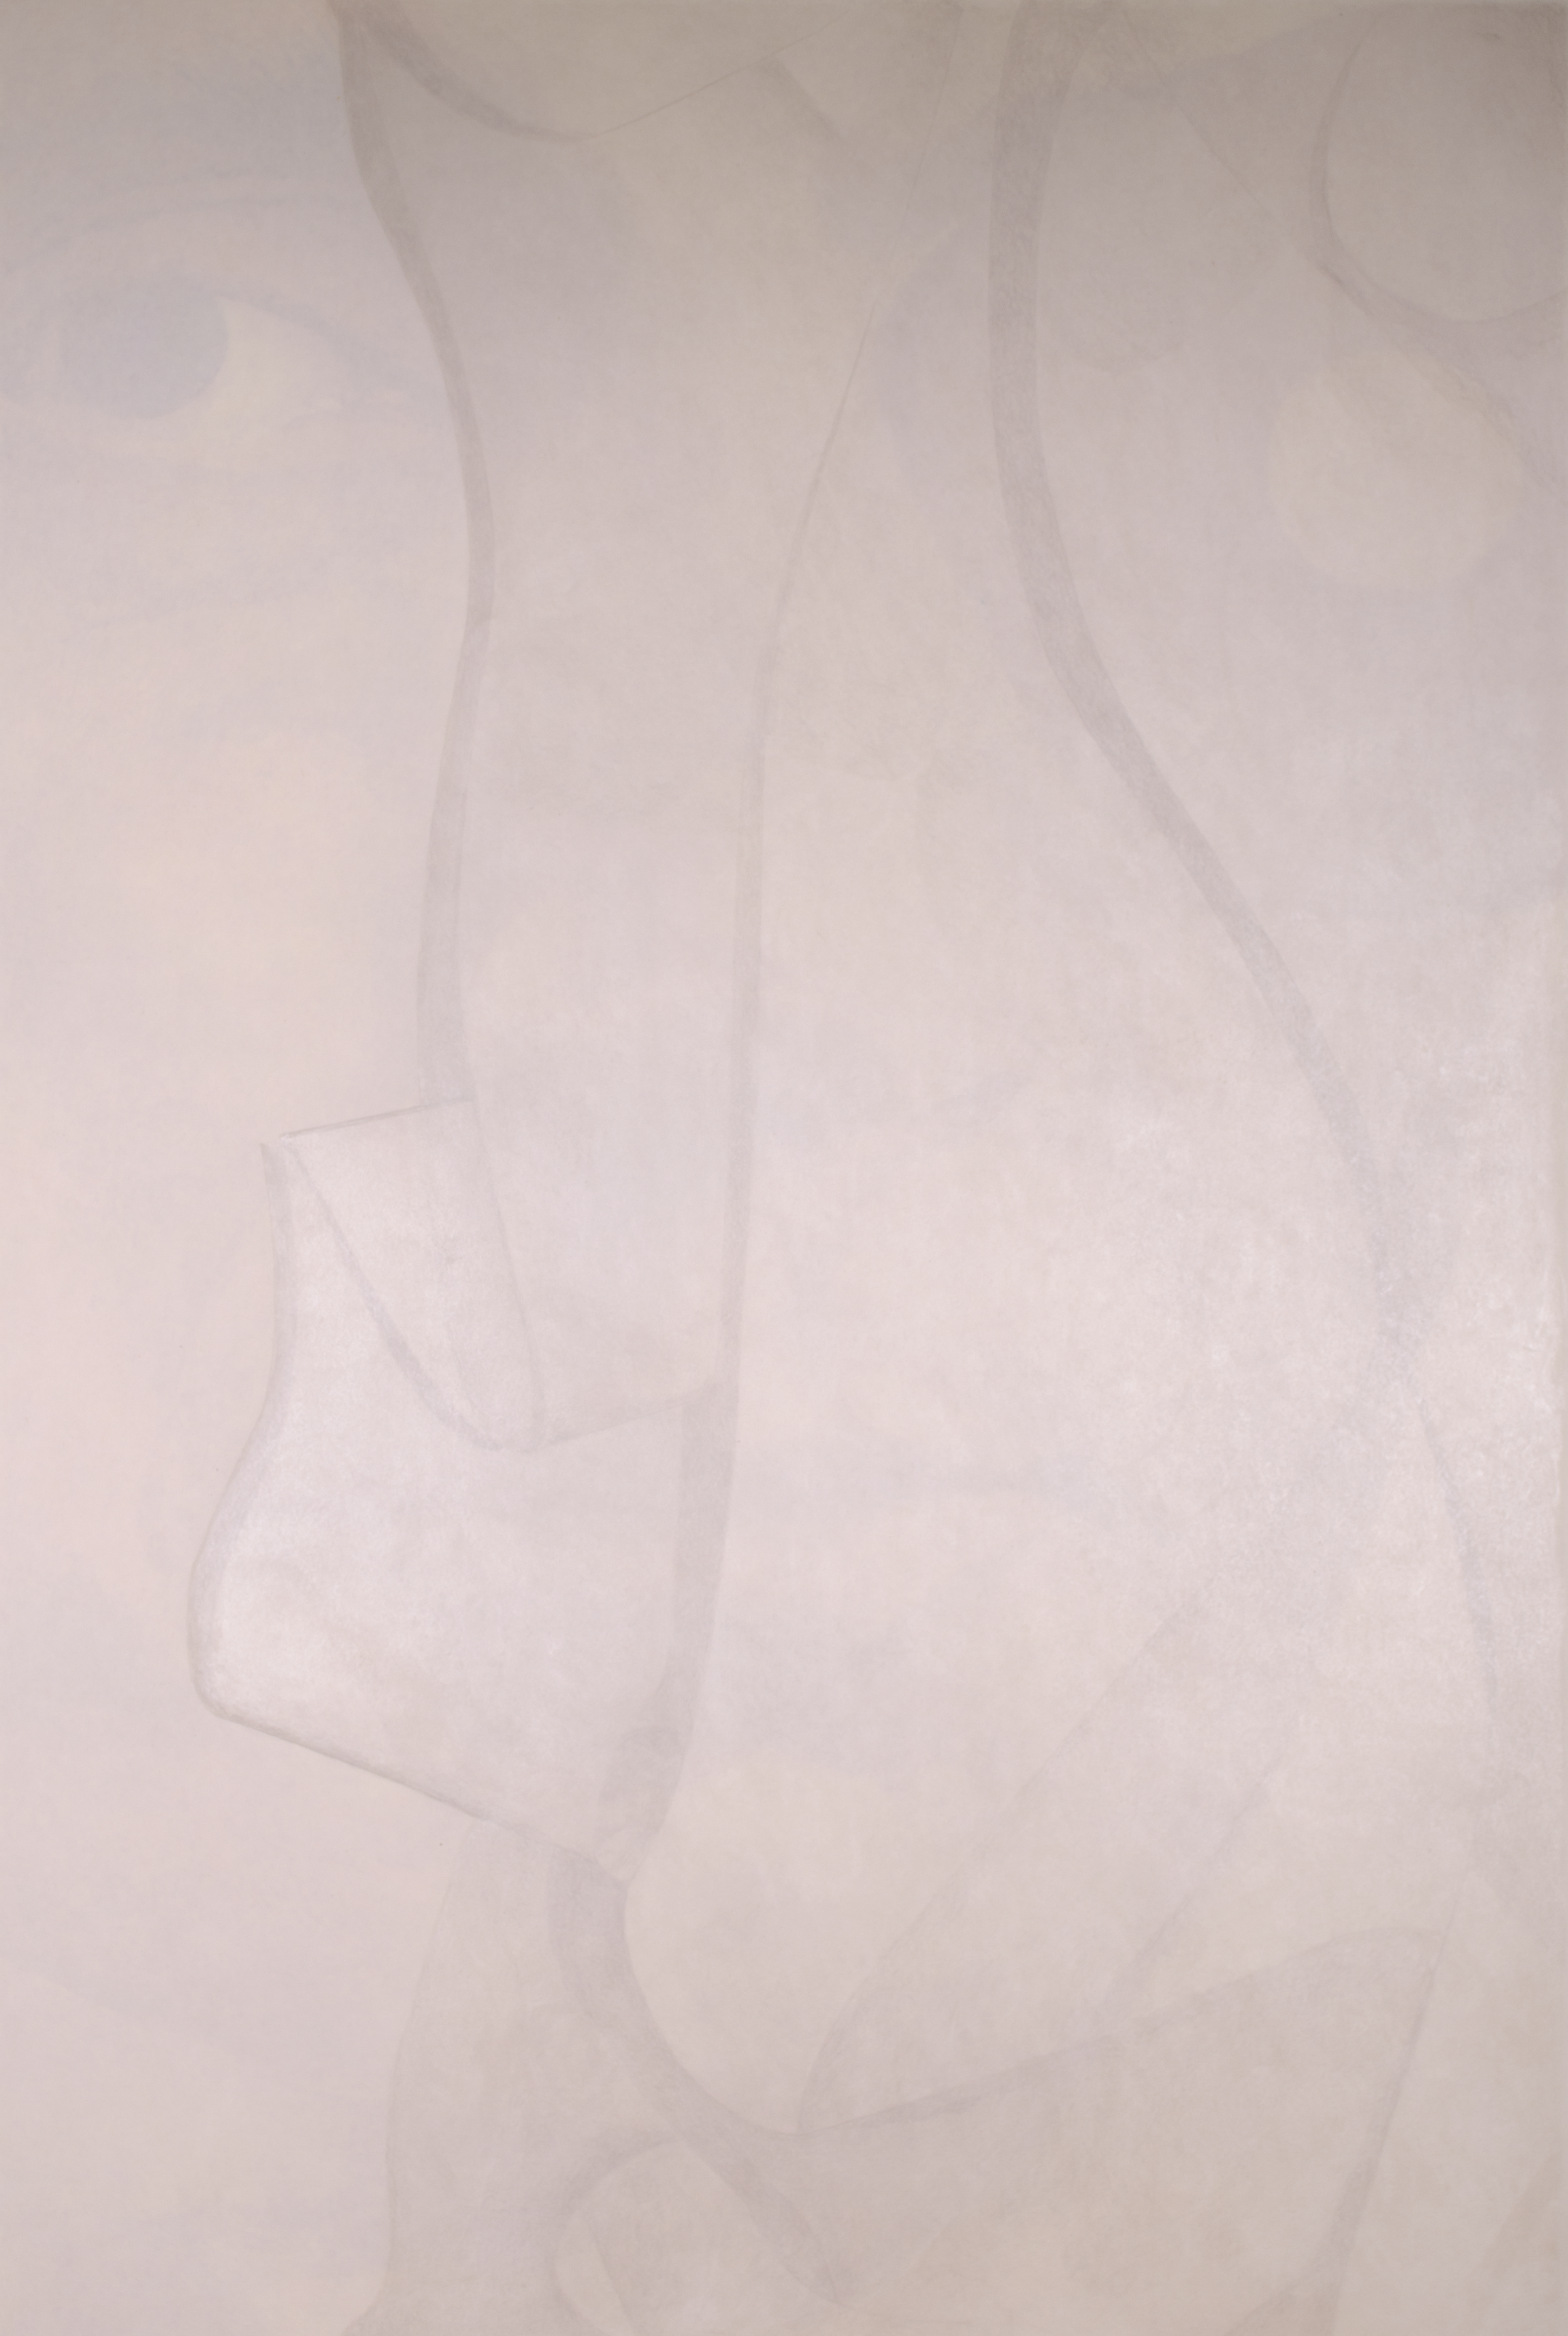 """Side #A…JEAN ARP 2016-17 © inspired by:- photographer not known (black & white); oil pastel, color pencils ON PAPER 49.5"""" x 73.5"""" [125.73 cm x 186.69 cm]"""